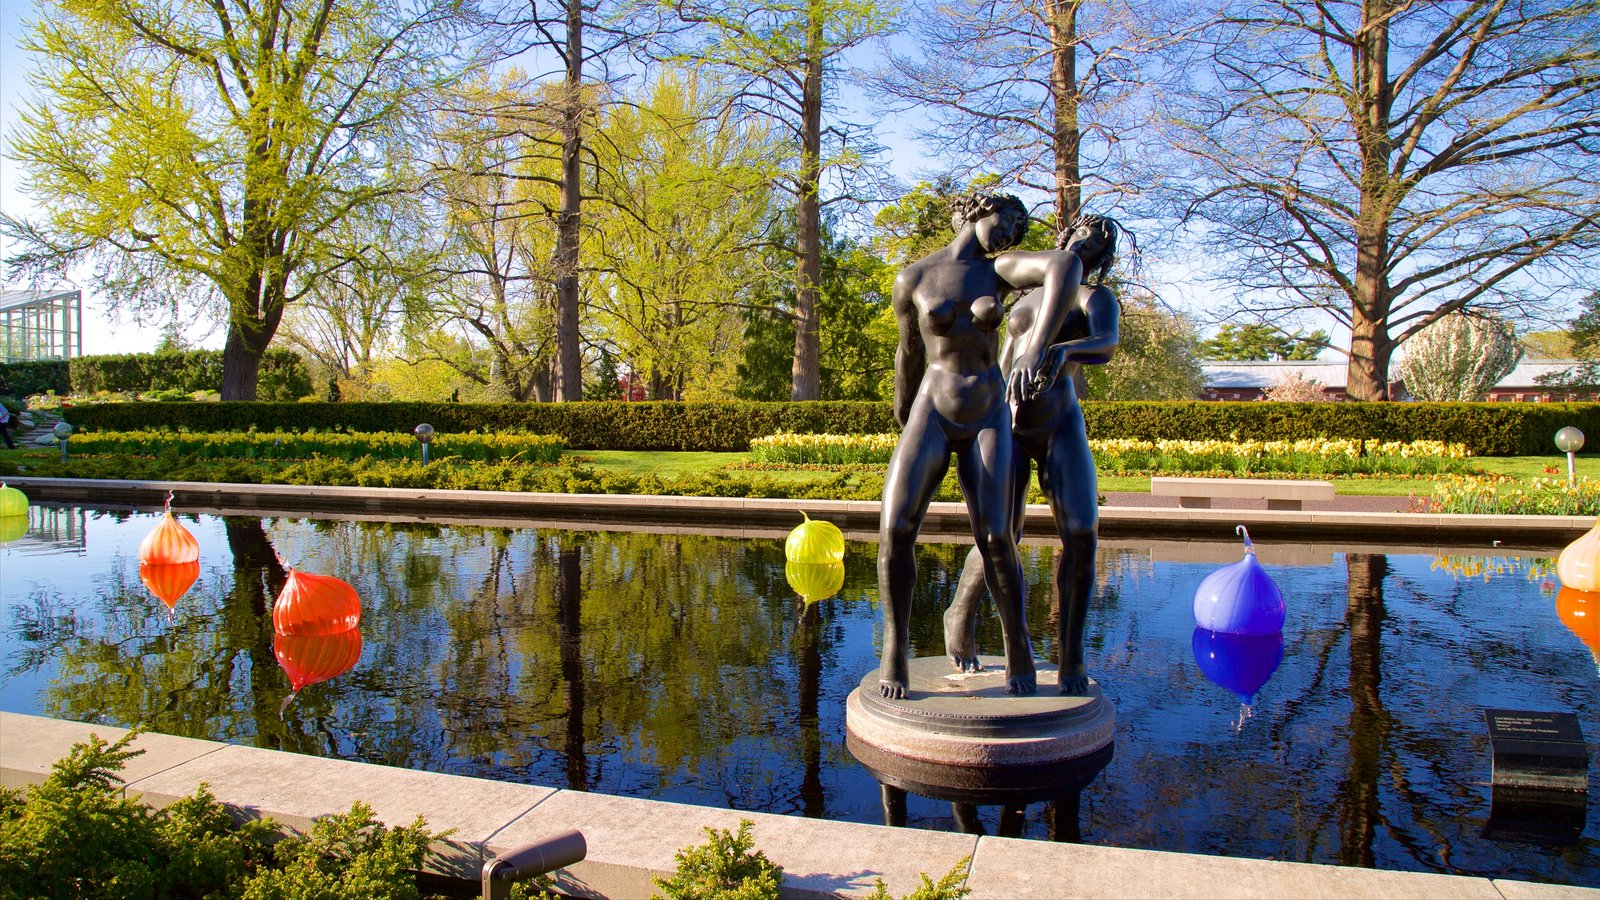 Missouri Botanical Gardens and Arboretum featuring a pond, a park and a statue or sculpture